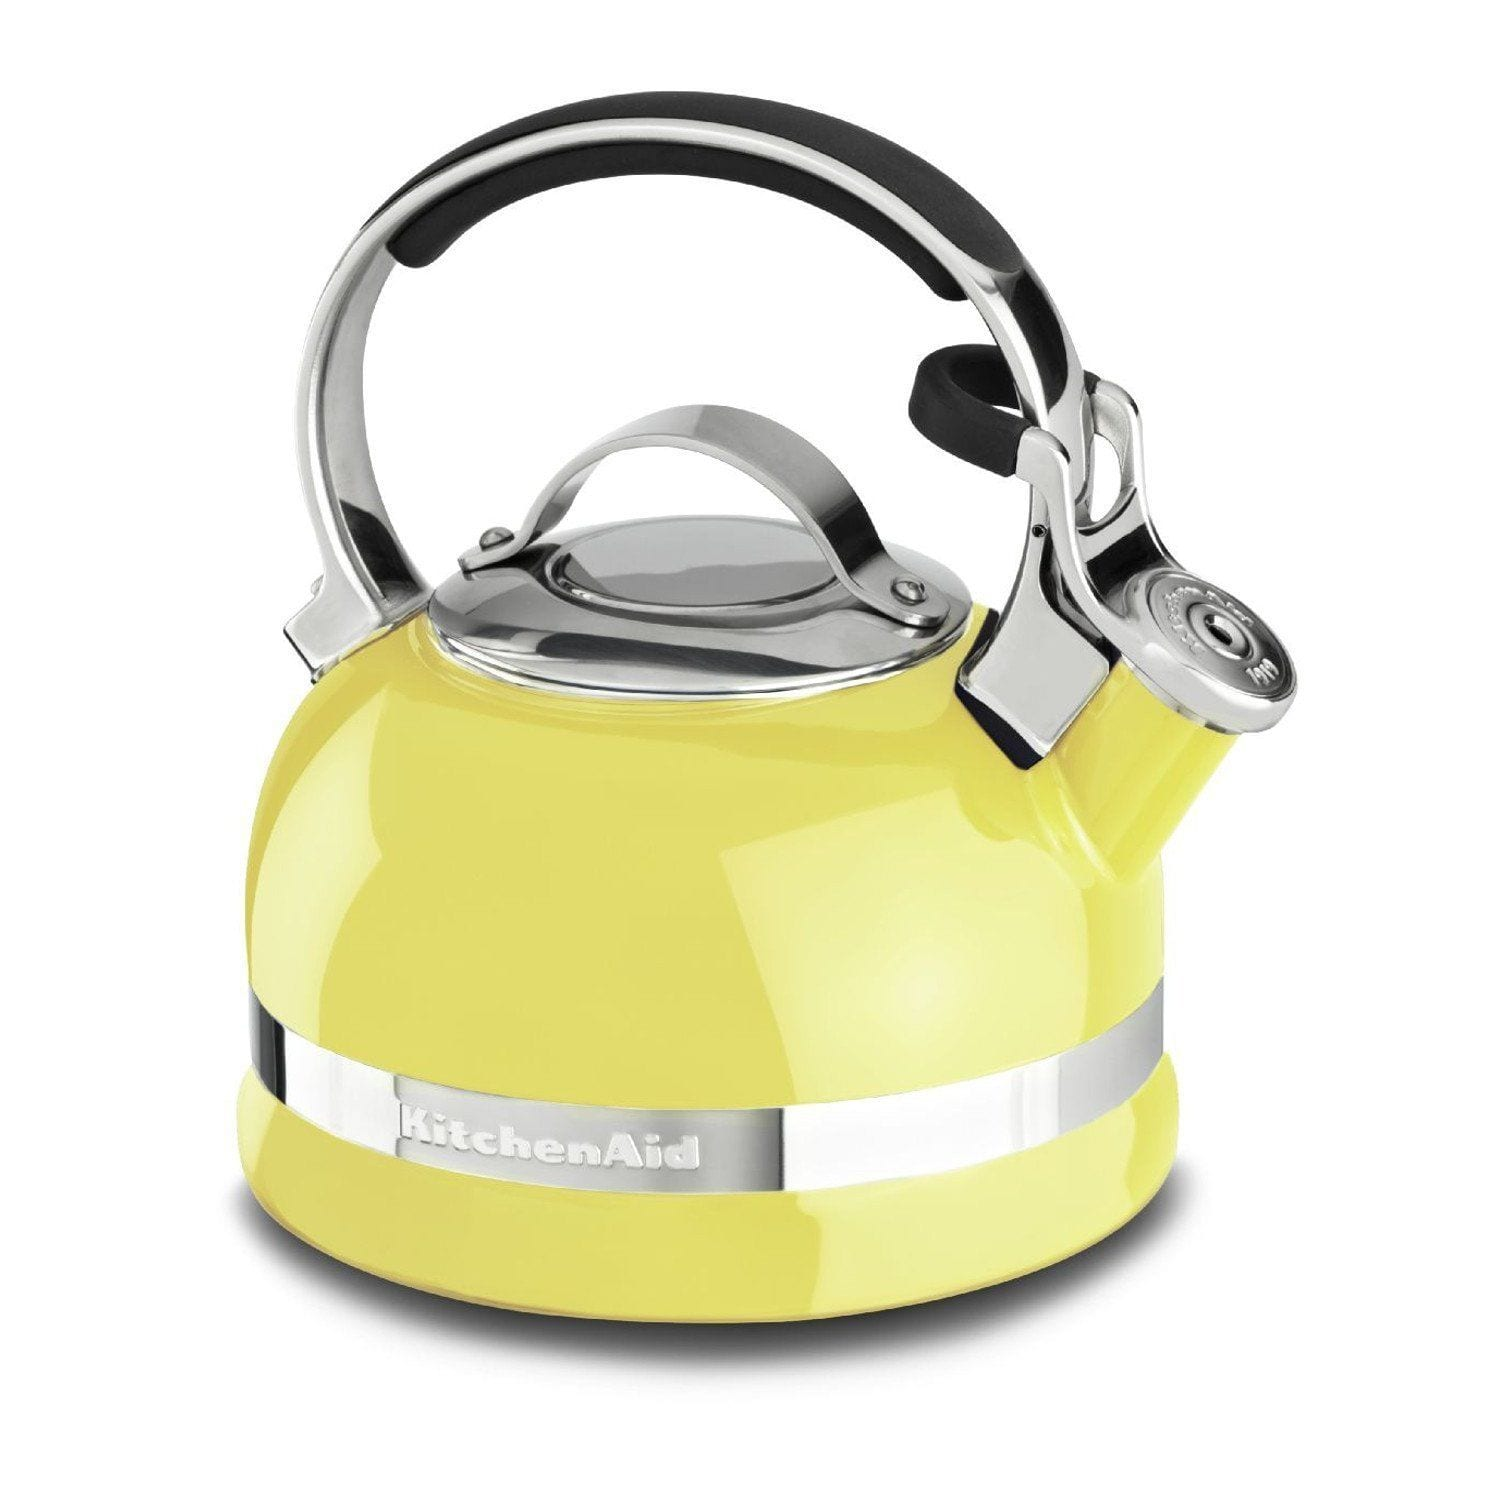 Yellow Accessories For Kitchen 17 Retro Kitchen Accessories Thatll Give You A Blast From The